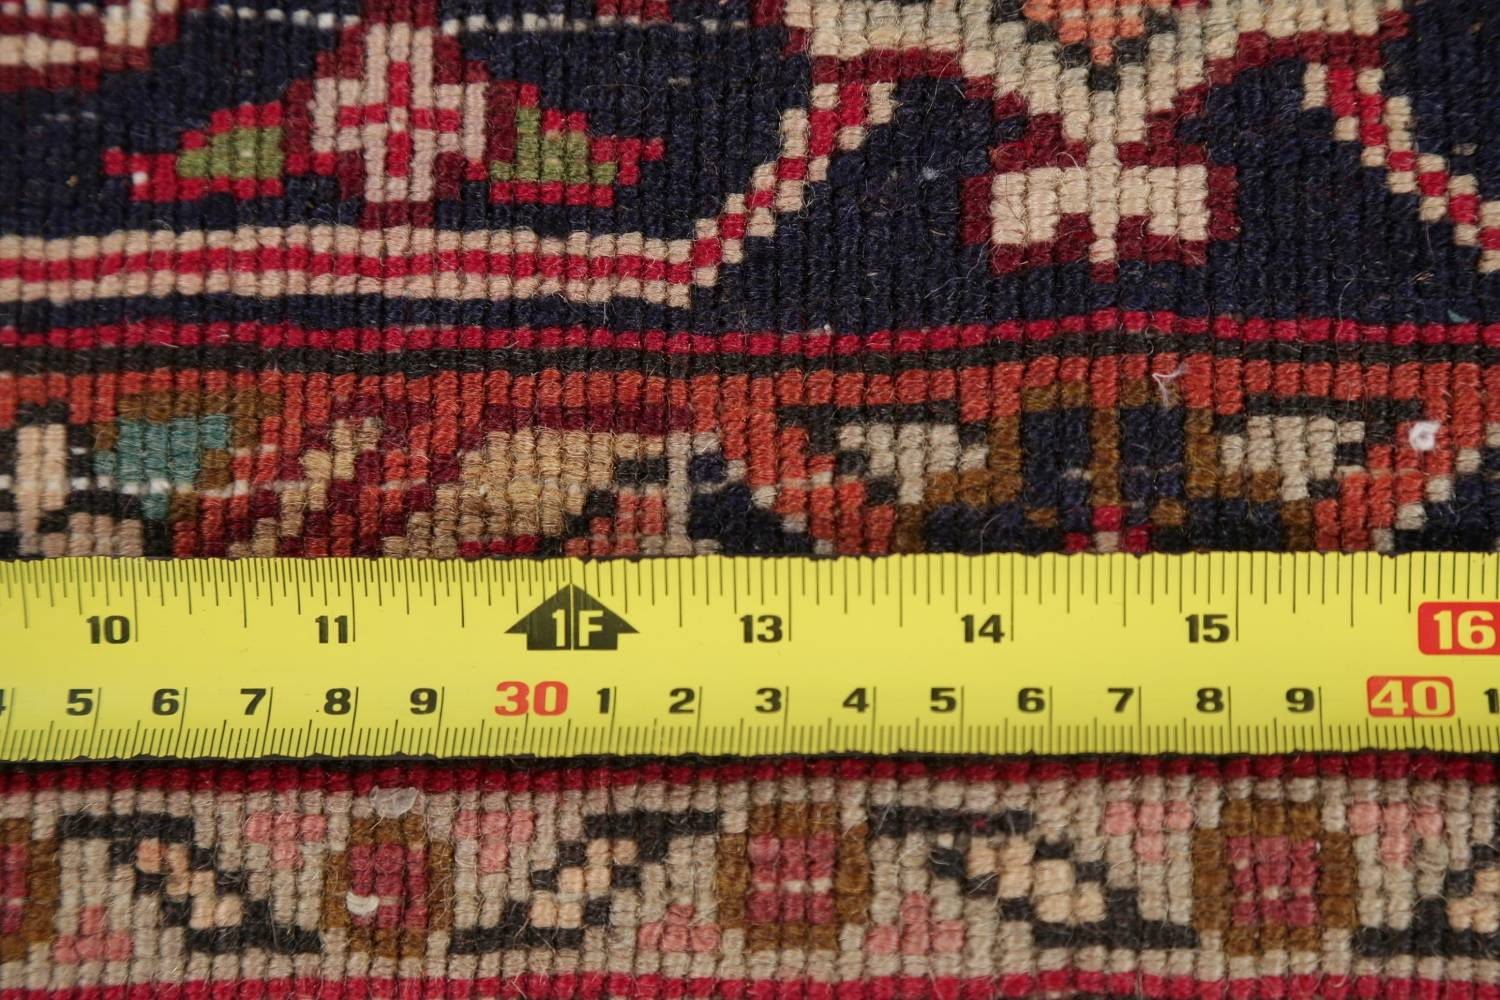 One-of-a-Kind Antique Heriz Serapi Persian Hand-Knotted 7x9 Wool Area Rug image 21